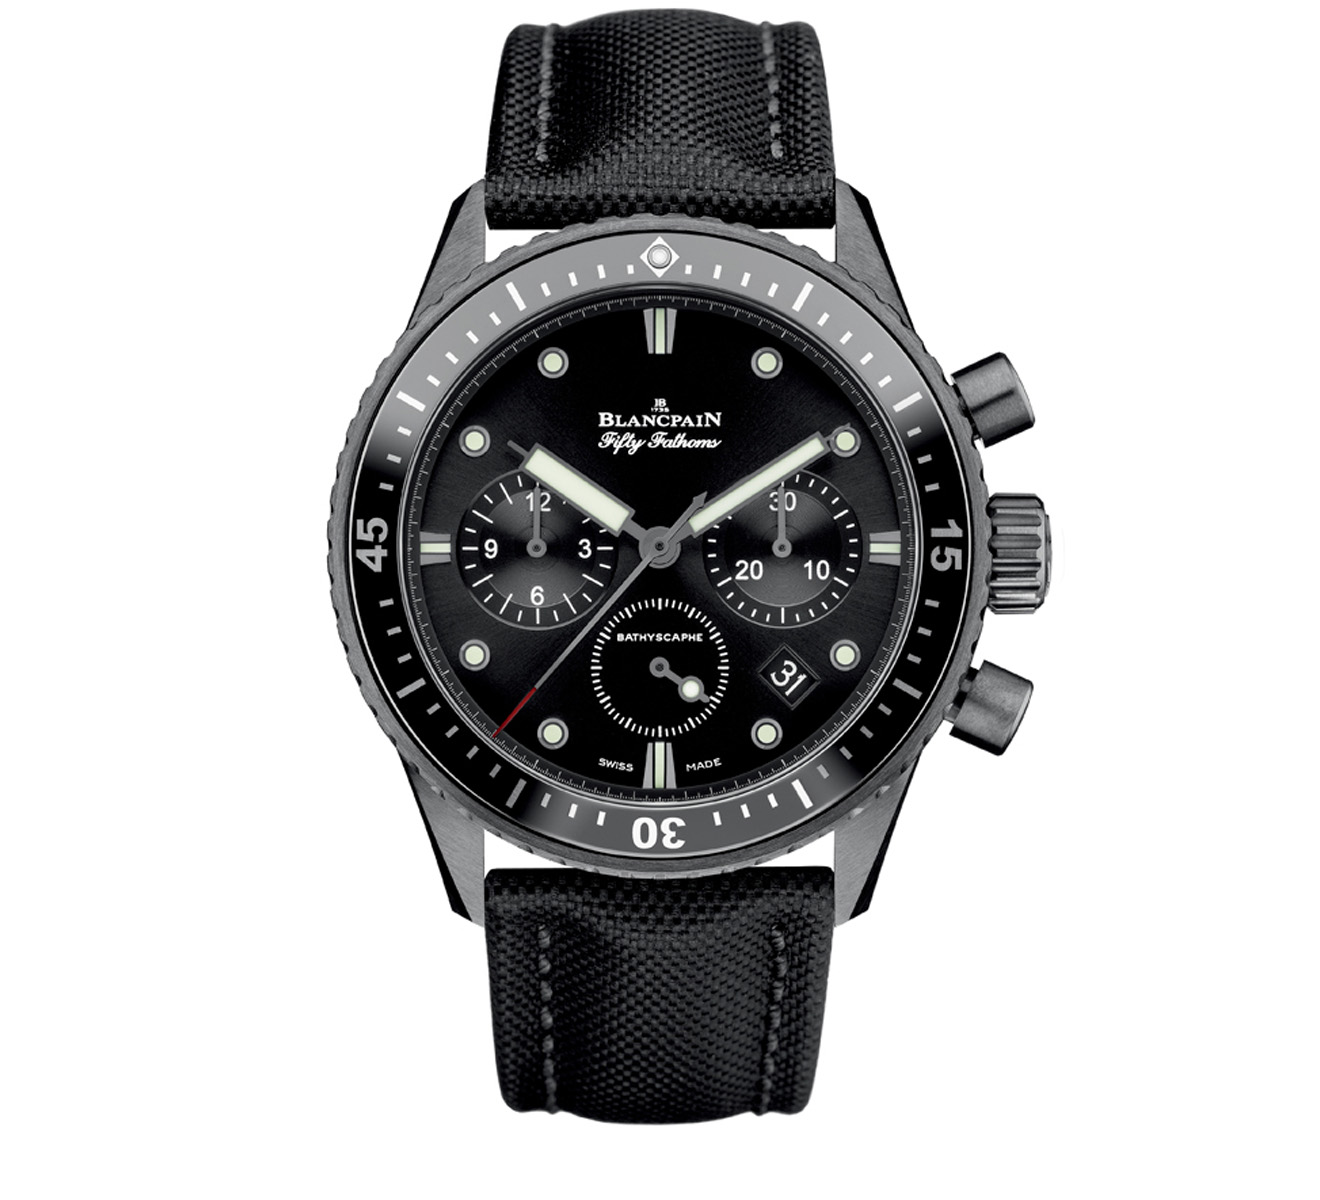 Часы Bathyscaphe Chronographe Flyback Blancpain Fifty Fathoms 5200 0130 B52A - фото 1 – Mercury